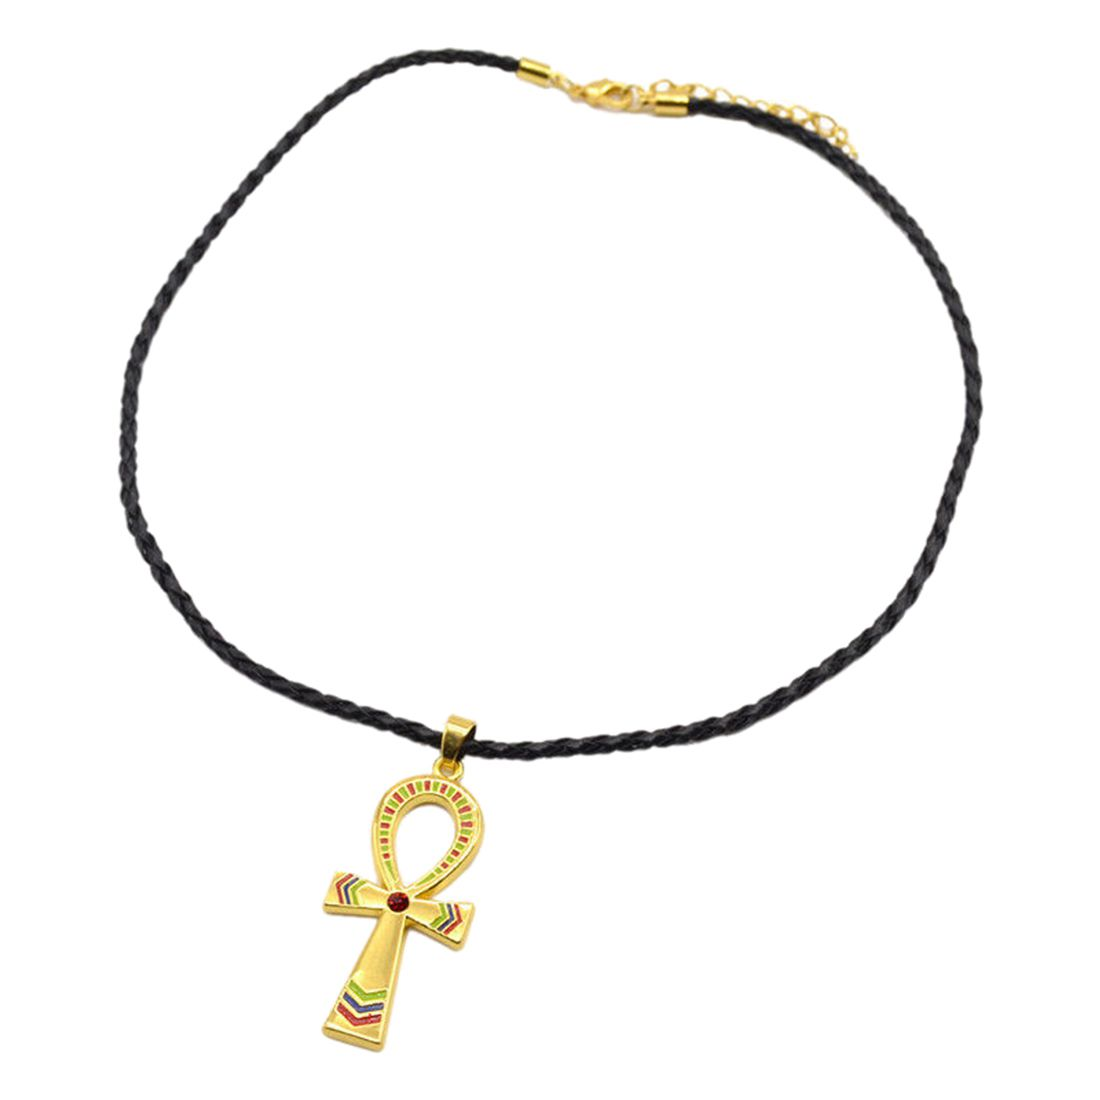 egyptian symbol necklace - photo #14